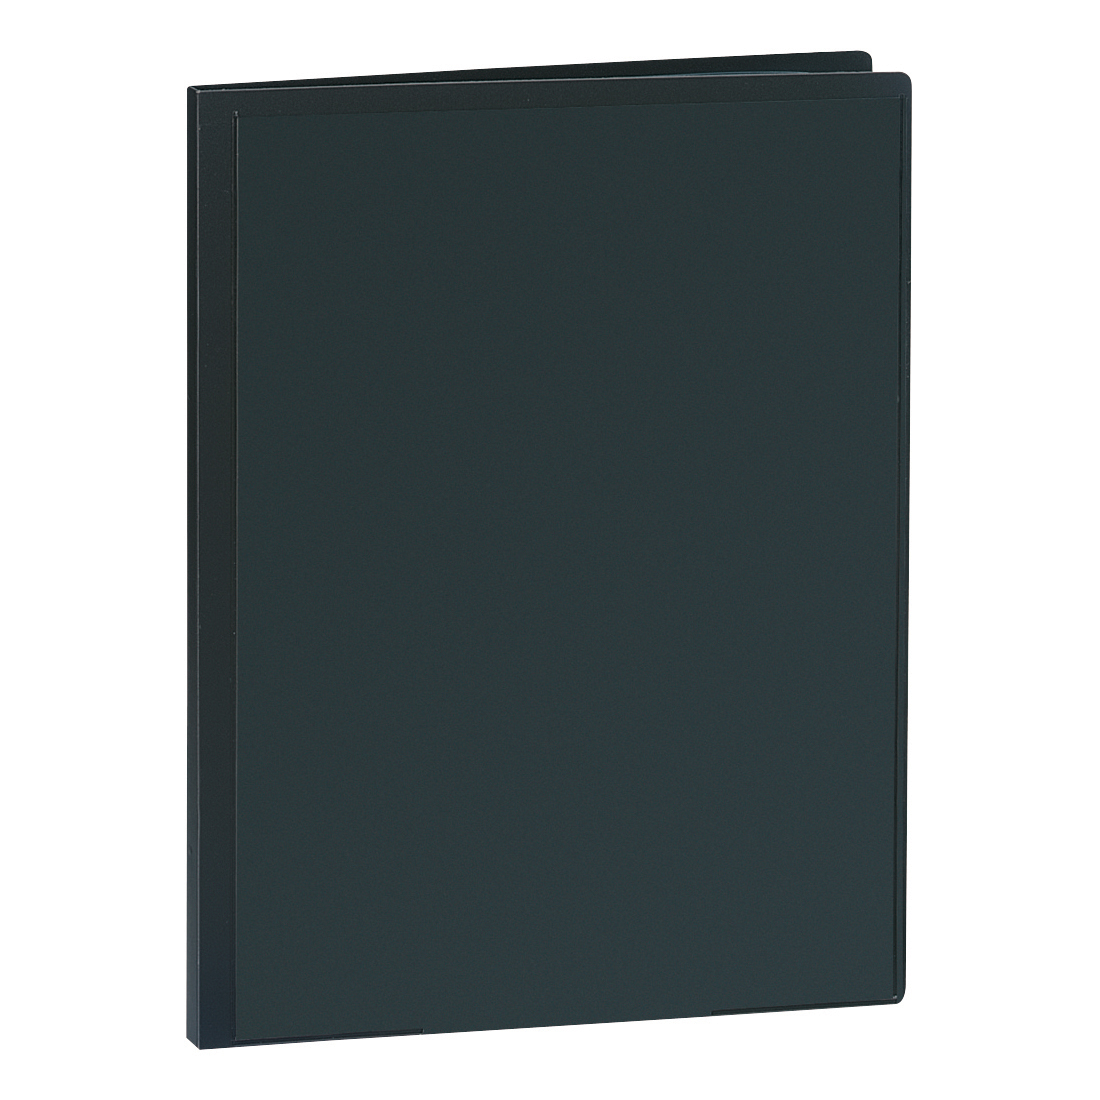 Display Books 5 Star Office Display Book Personalisable Cover Polypropylene 20 Pockets A4 Black